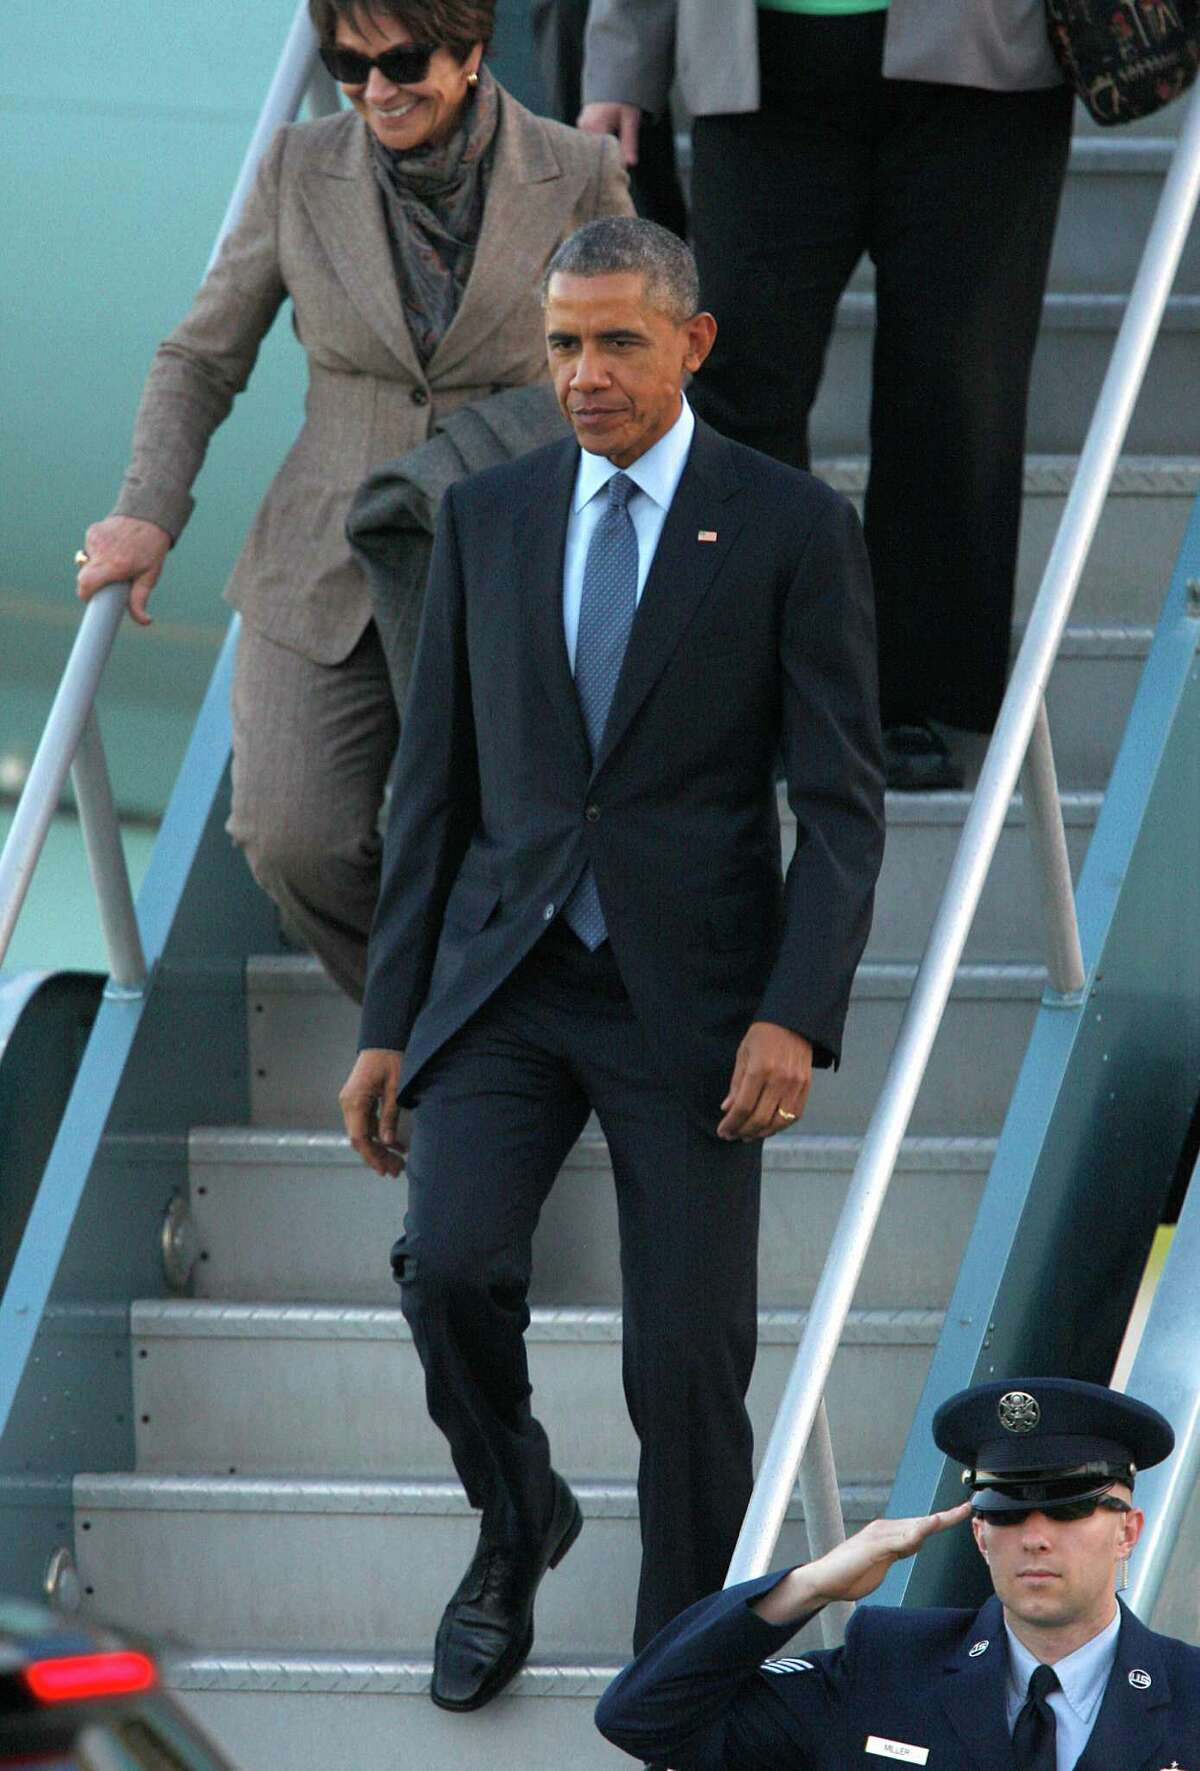 President Obama arrives at San Francisco International Airport on Feb. 12.